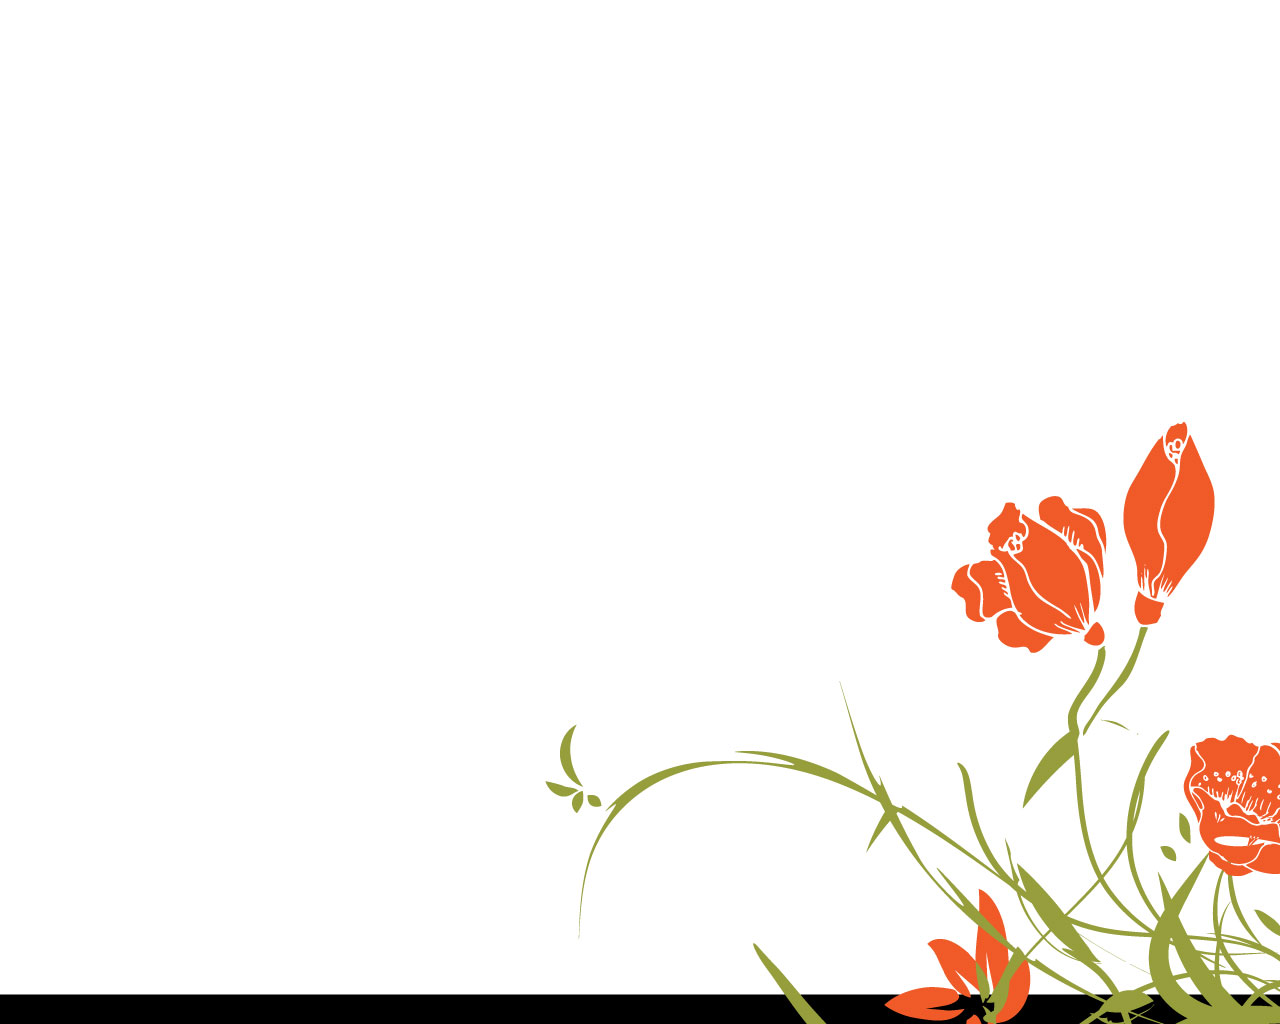 Star Floral Design For Powerpoint Backgrounds Background Bunga High Resolution 1280x1024 Wallpaper Teahub Io